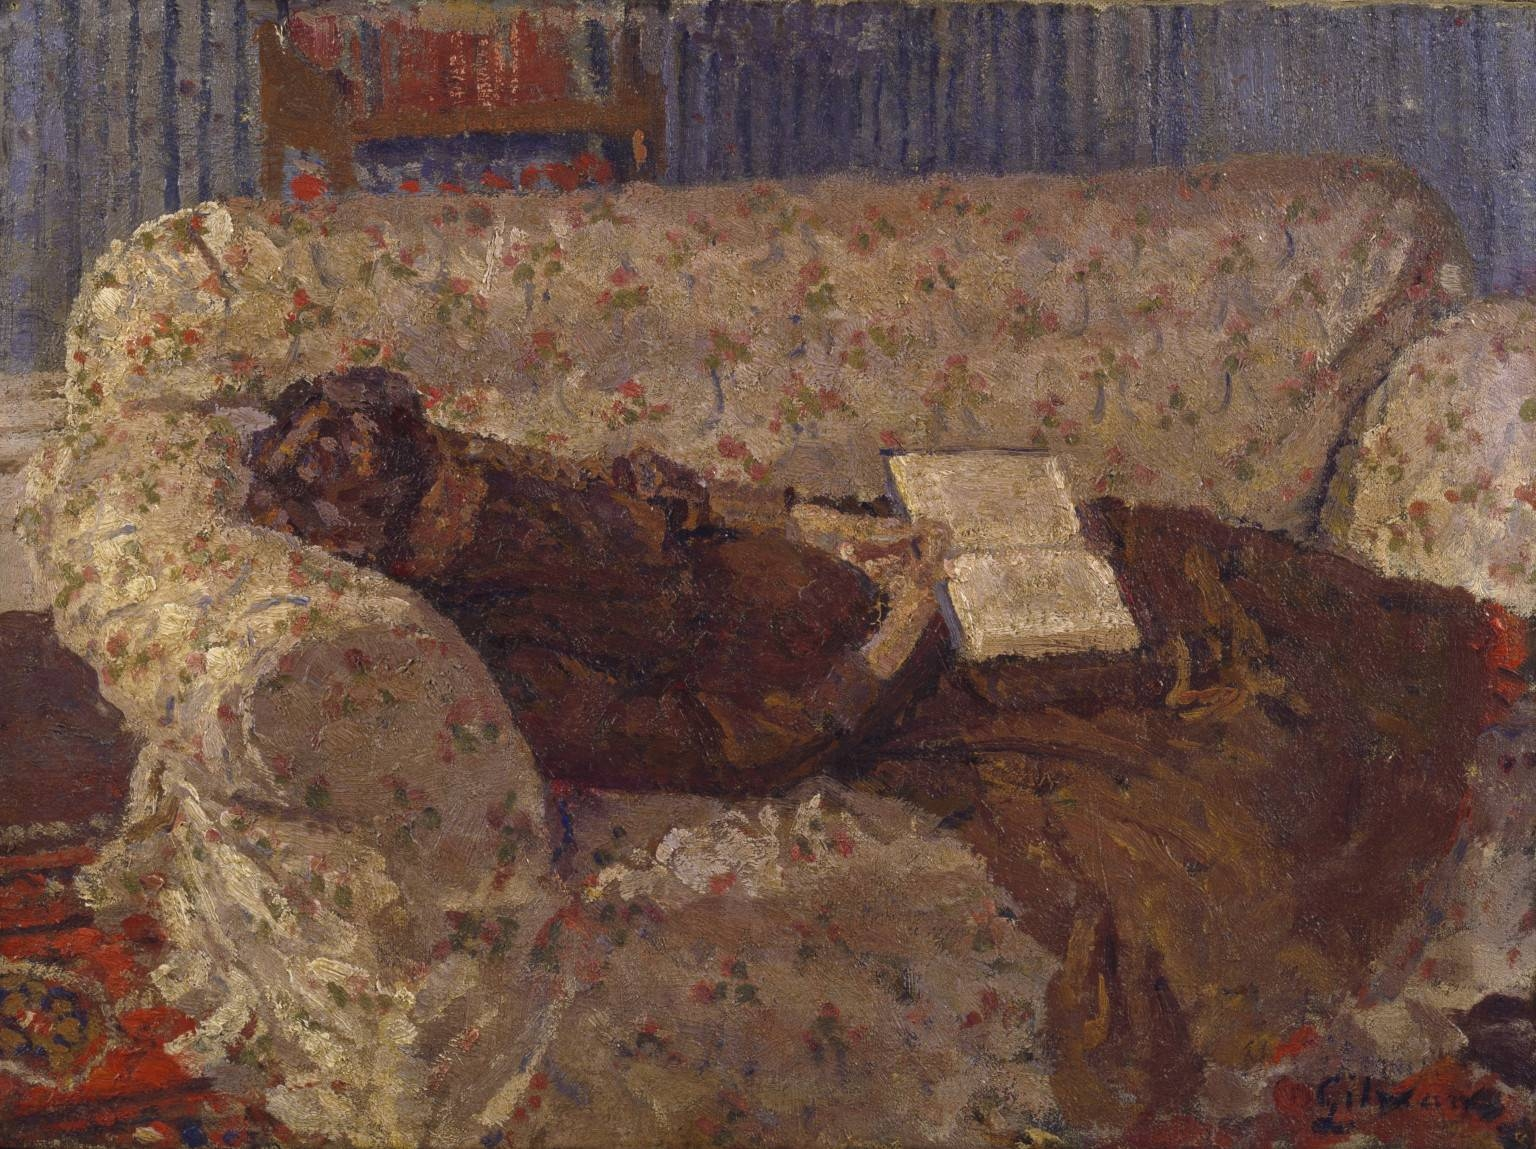 Ethel Sands, 'the Chintz Couch' C.1910-11 (The Camden Town Group in Chintz Sofas (Image 15 of 22)